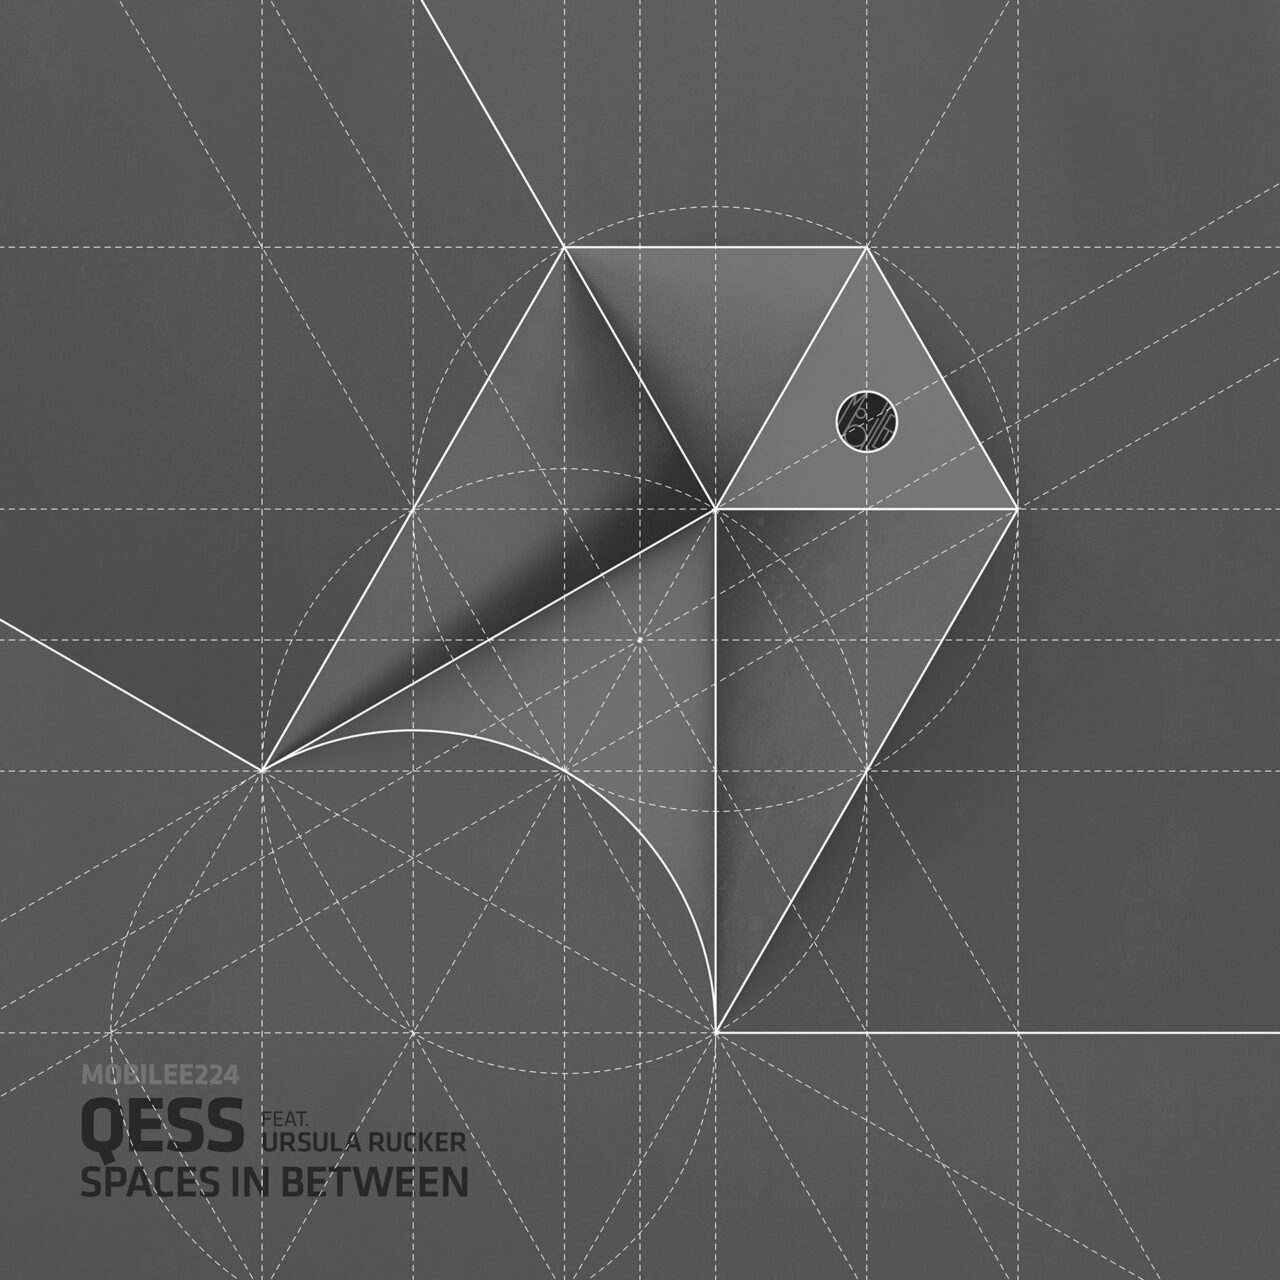 Mobilee224_Qees_SpacesInBetween_construction_small